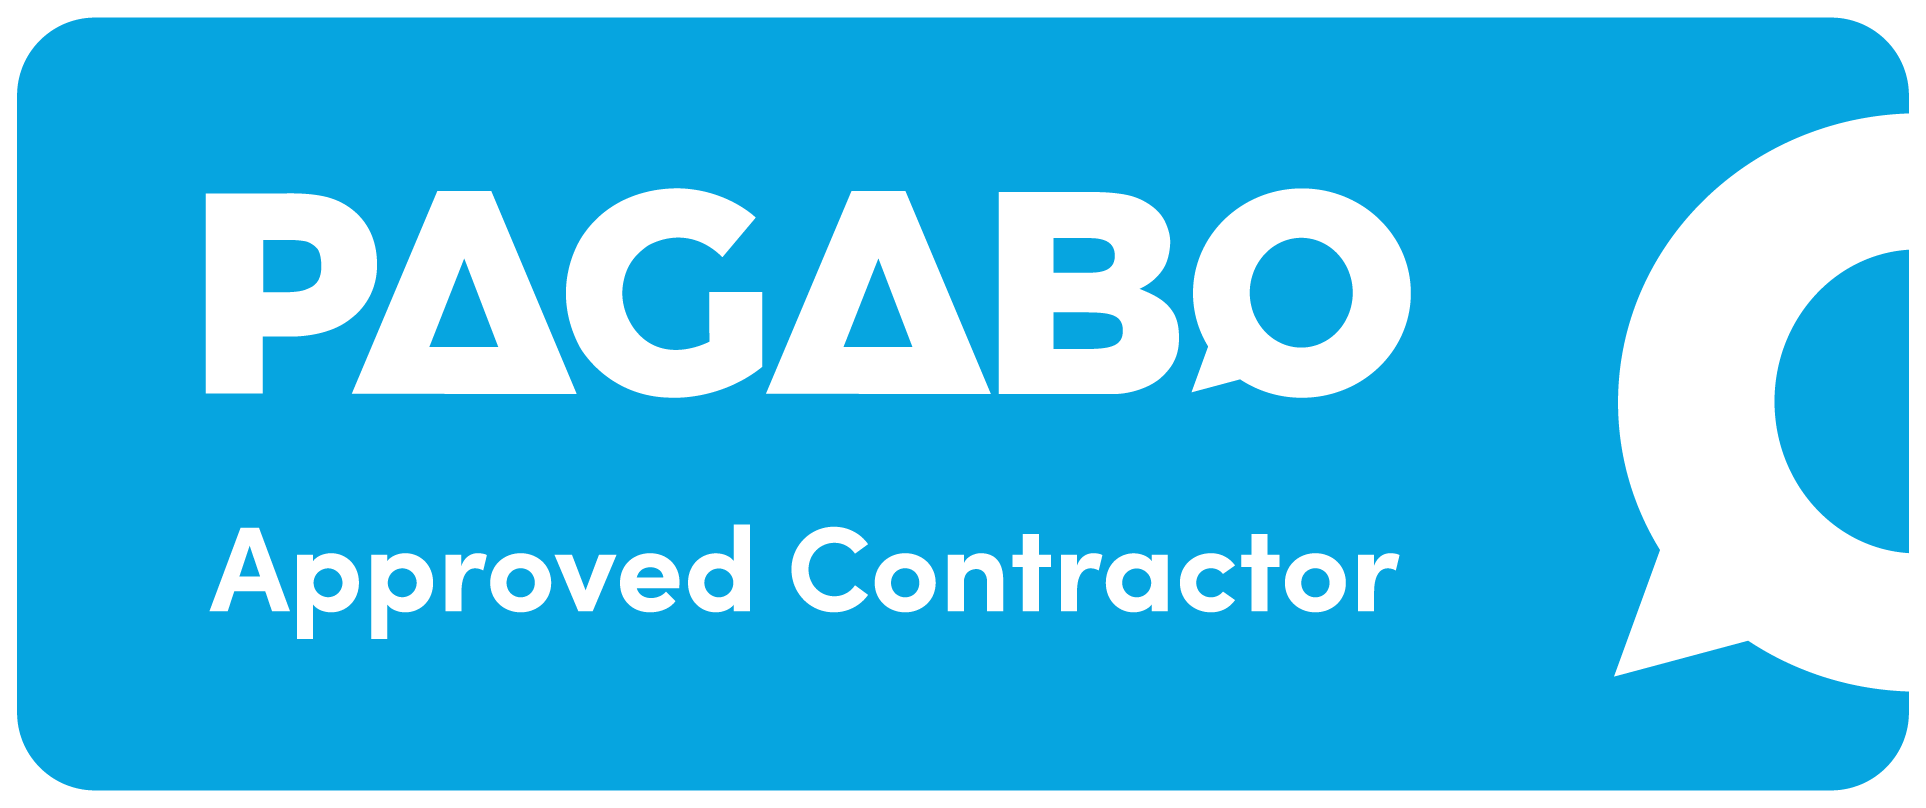 GRAHAM selected for Pagabo 10 billion national framework through a rigorous OJEU compliant tender process